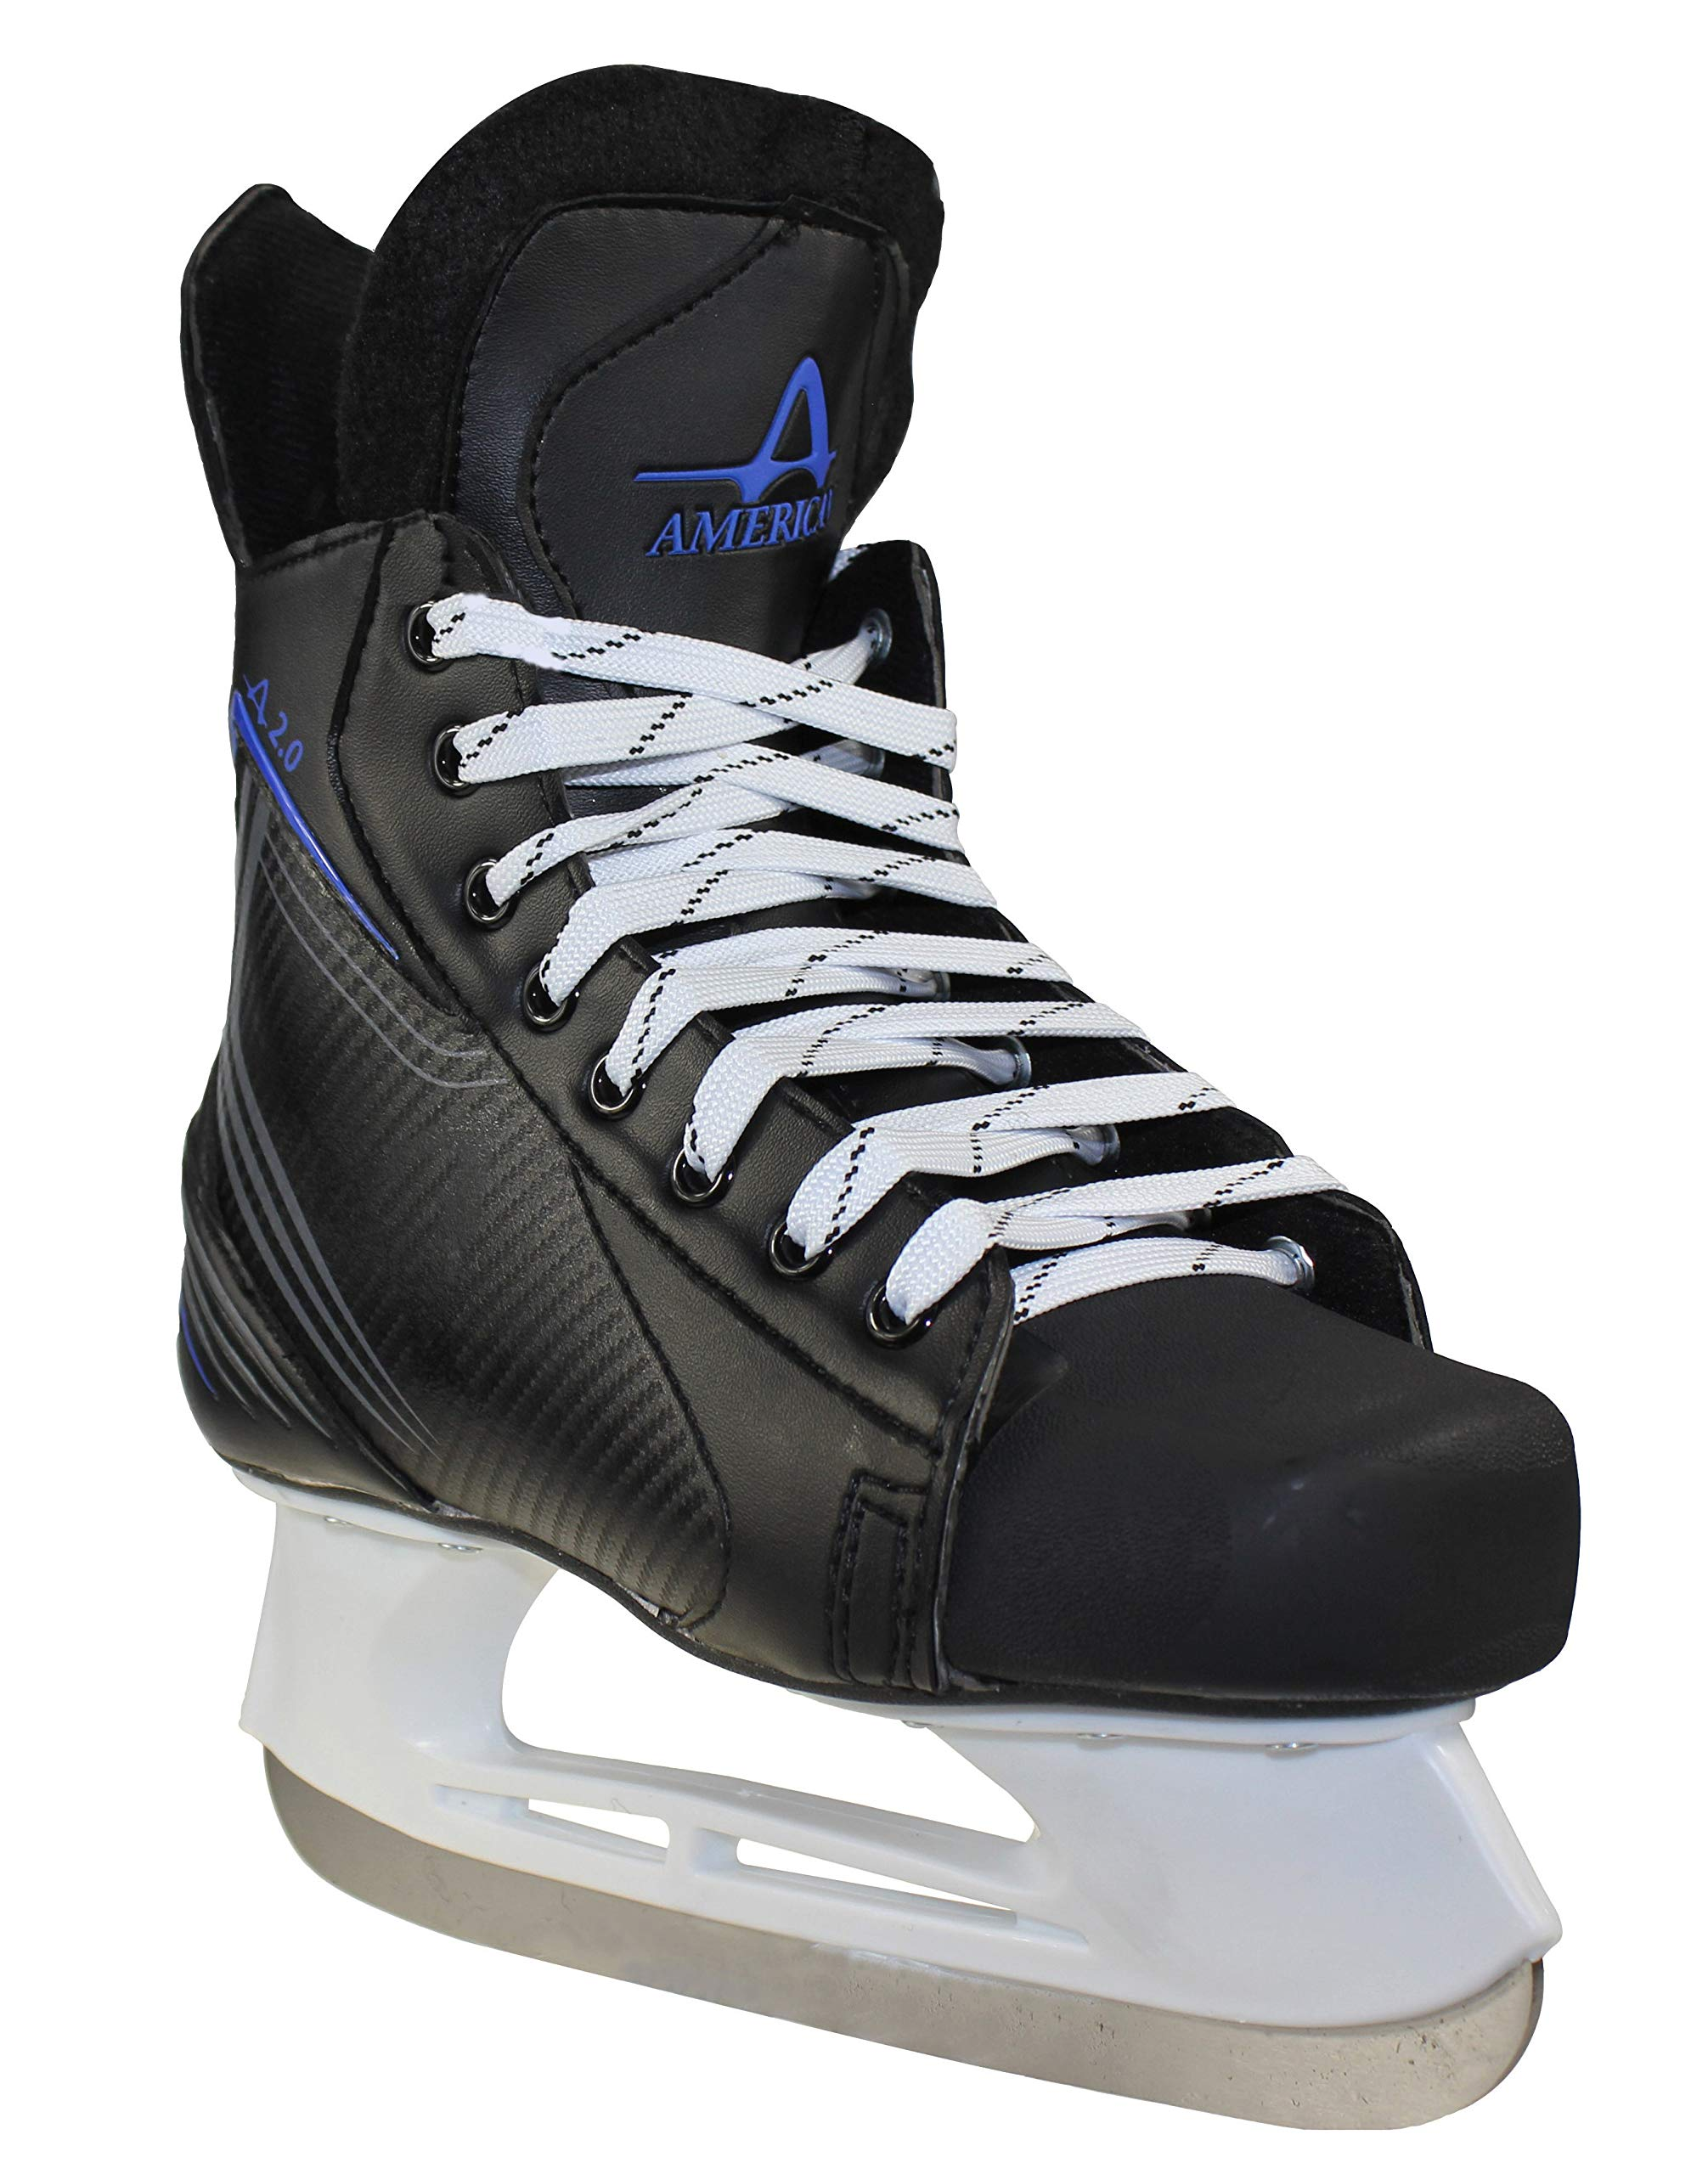 American Ice Force 2.0 Hockey Skate by American Athletic